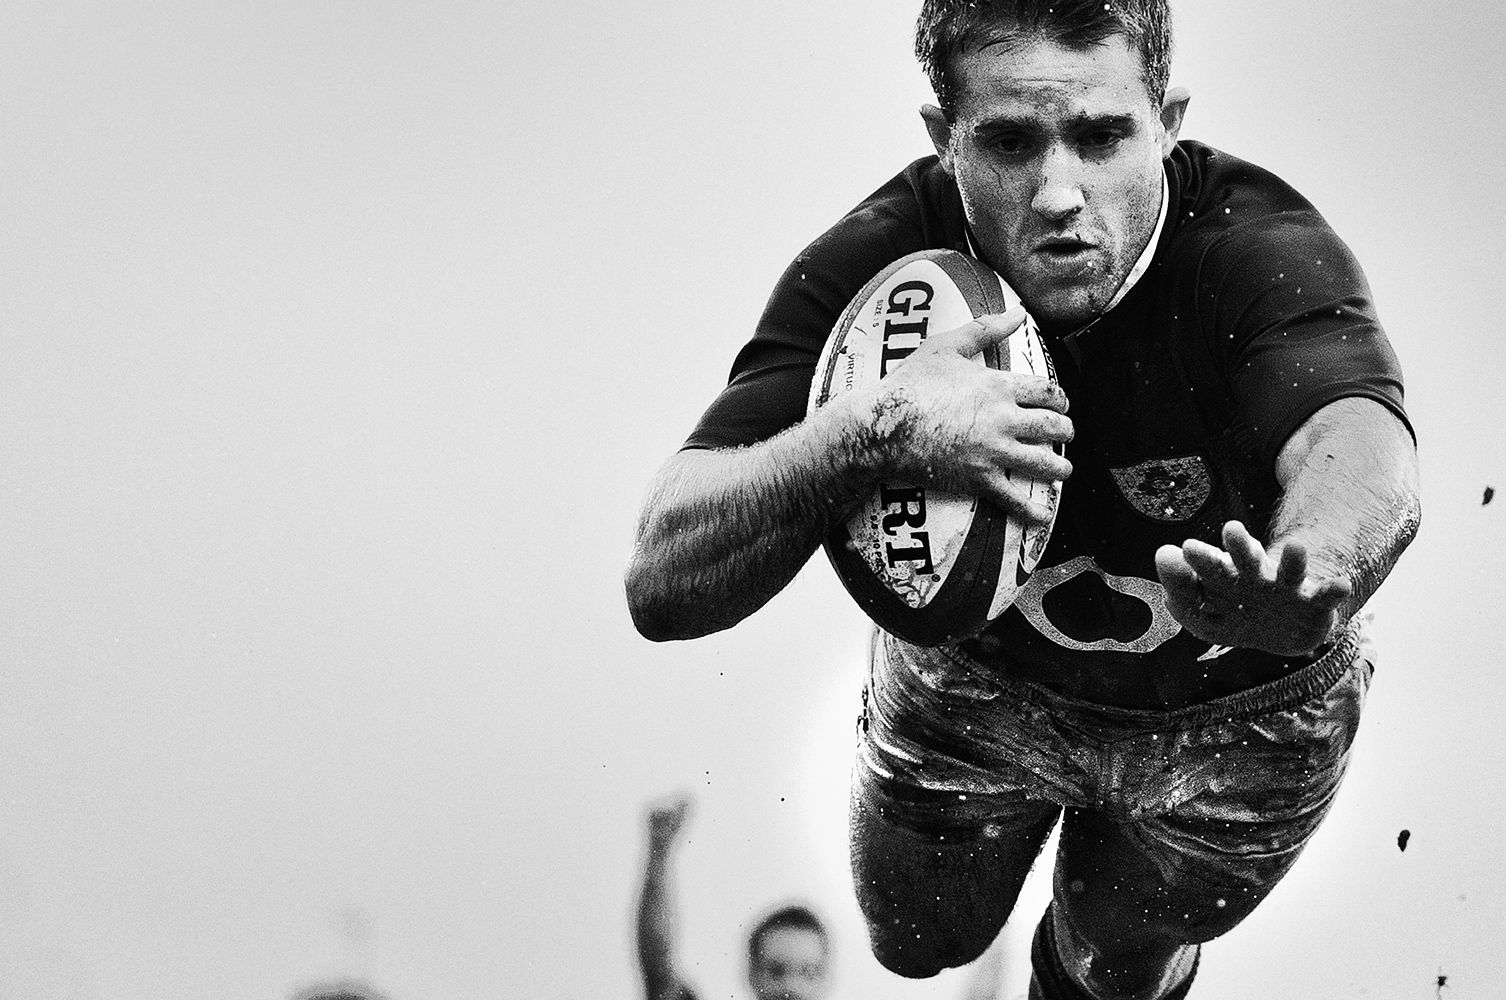 rugby try - Google Search